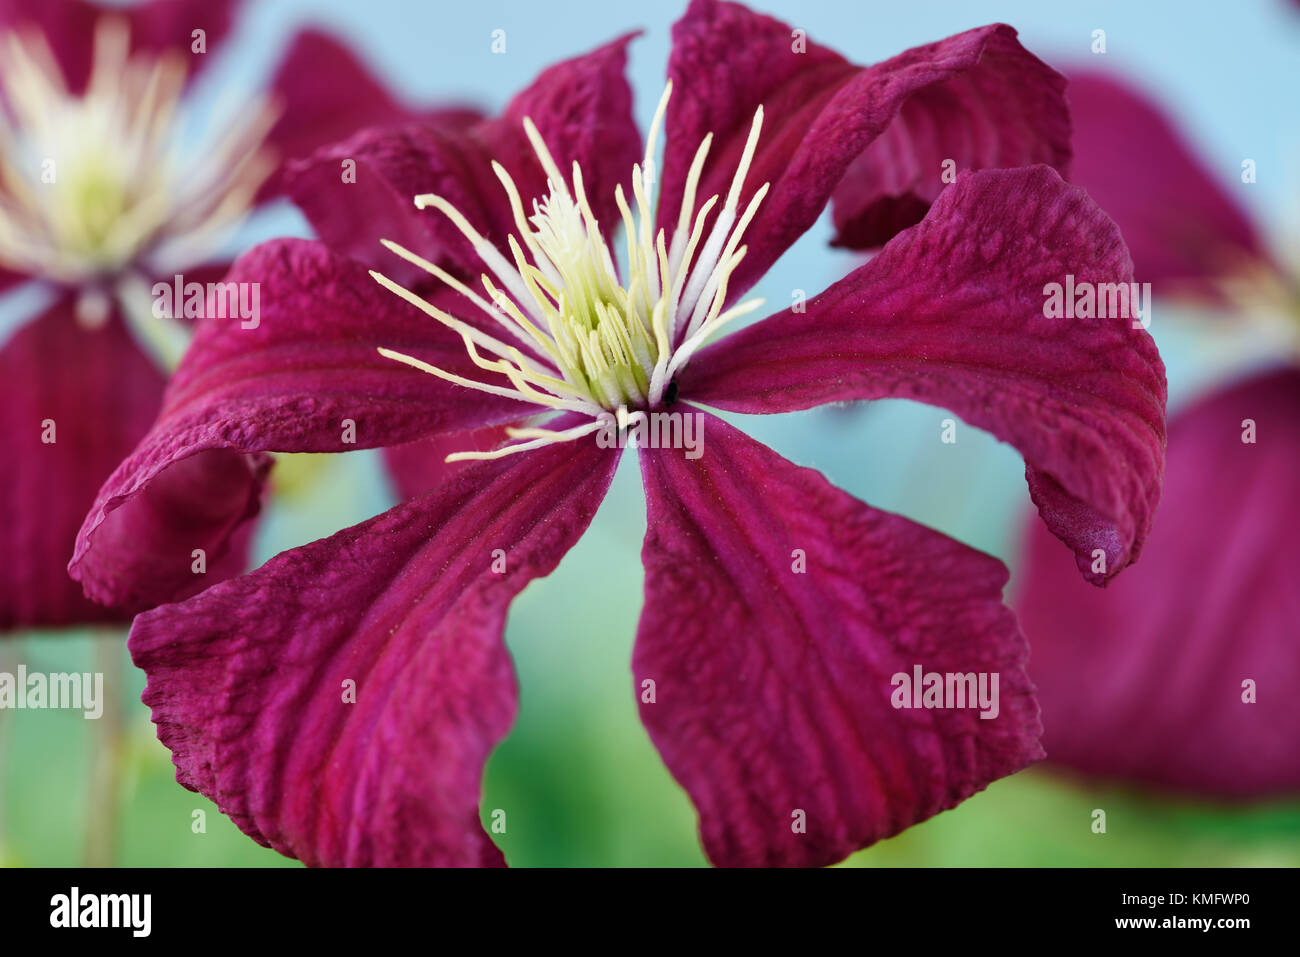 Clematis flower - Stock Image